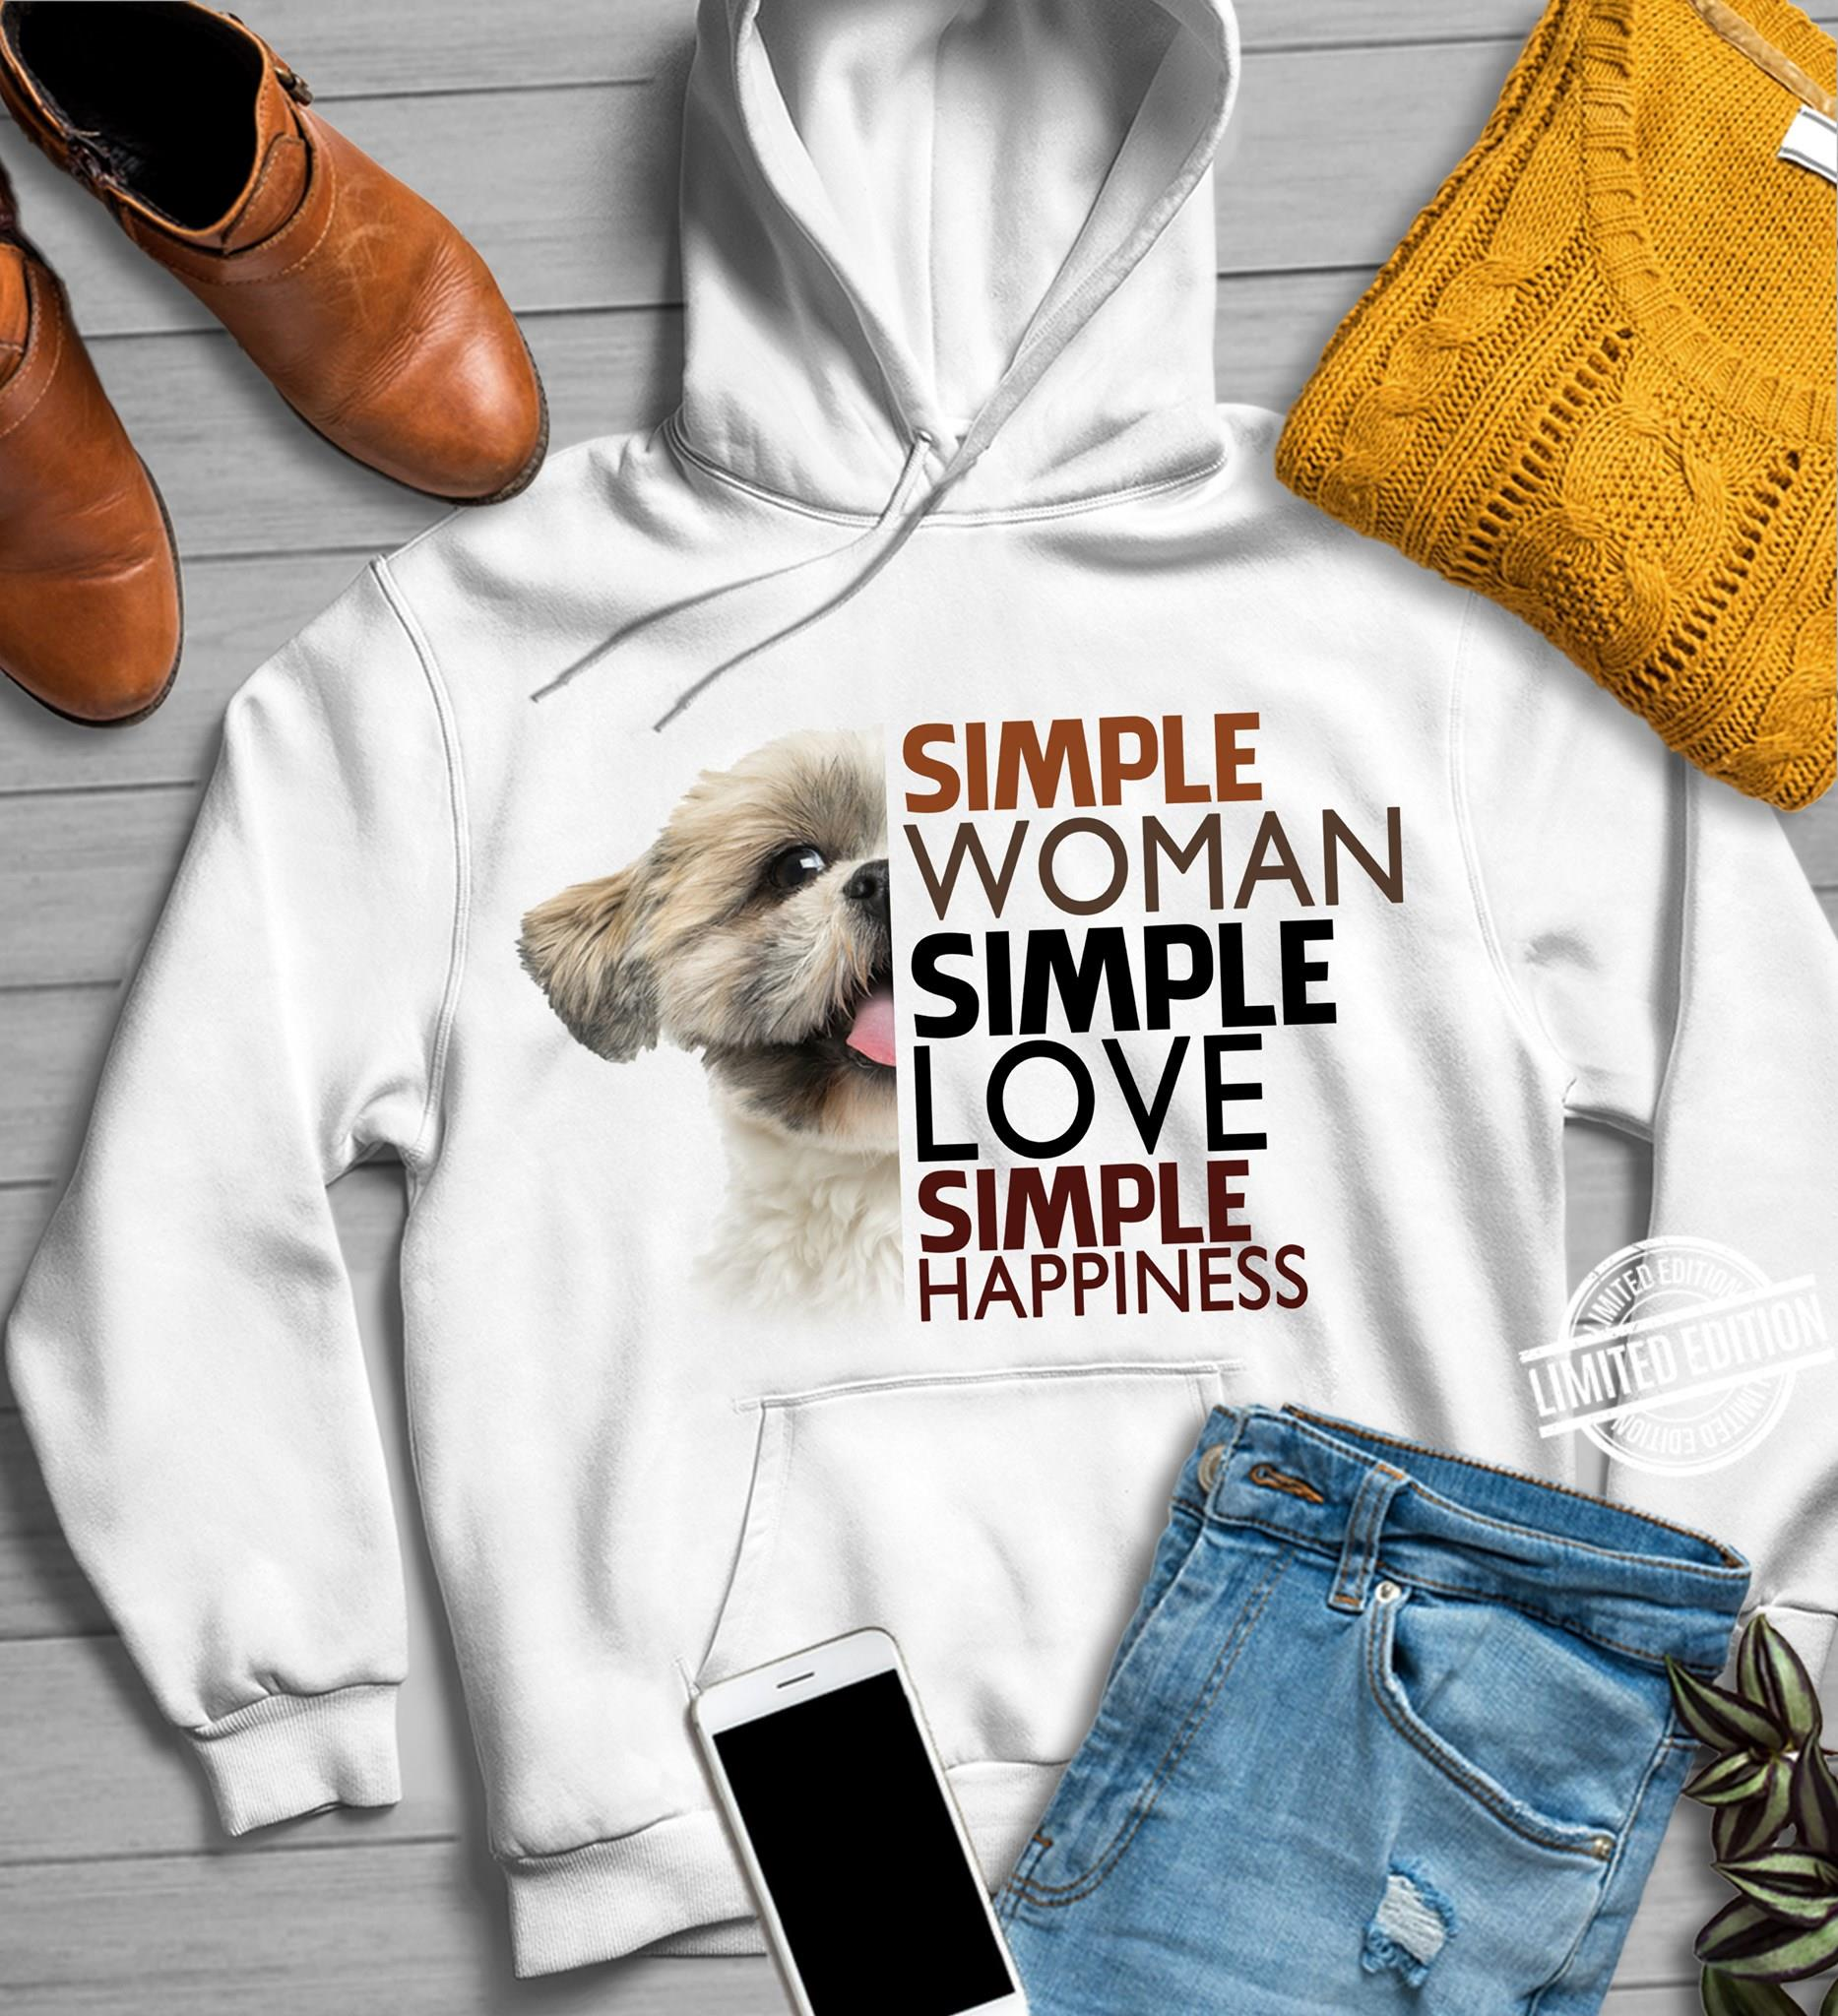 Simple Woman Simple Love Simple Happiness Shirt